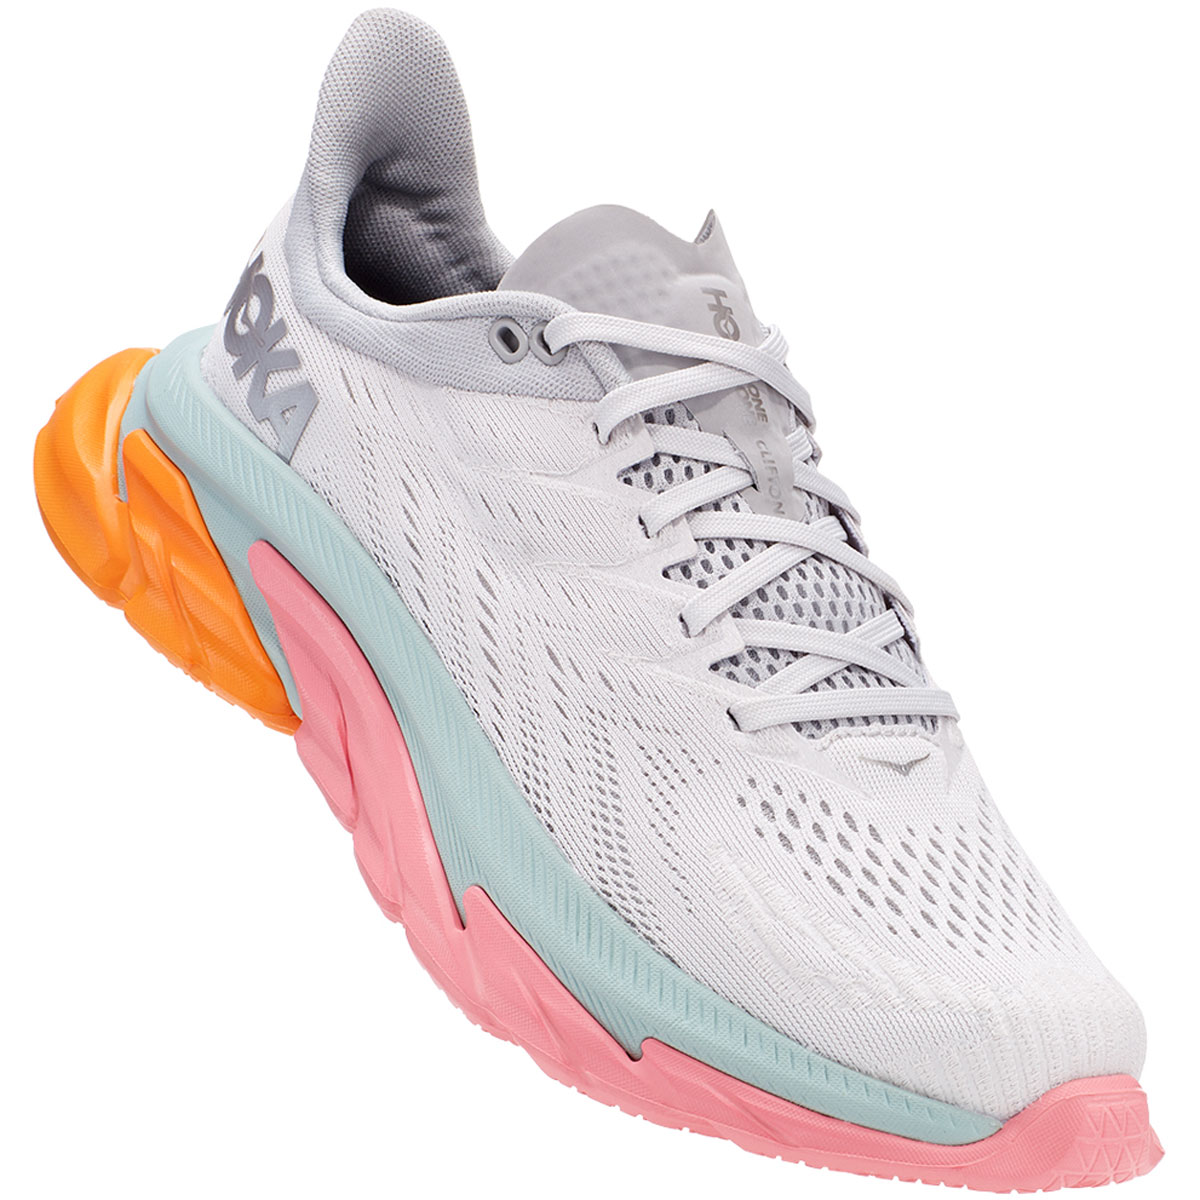 Women's Hoka One One Clifton Edge Running Shoe - Color: Nimbus Cloud/Lunar Rock - Size: 5 - Width: Regular, Nimbus Cloud/Lunar Rock, large, image 4